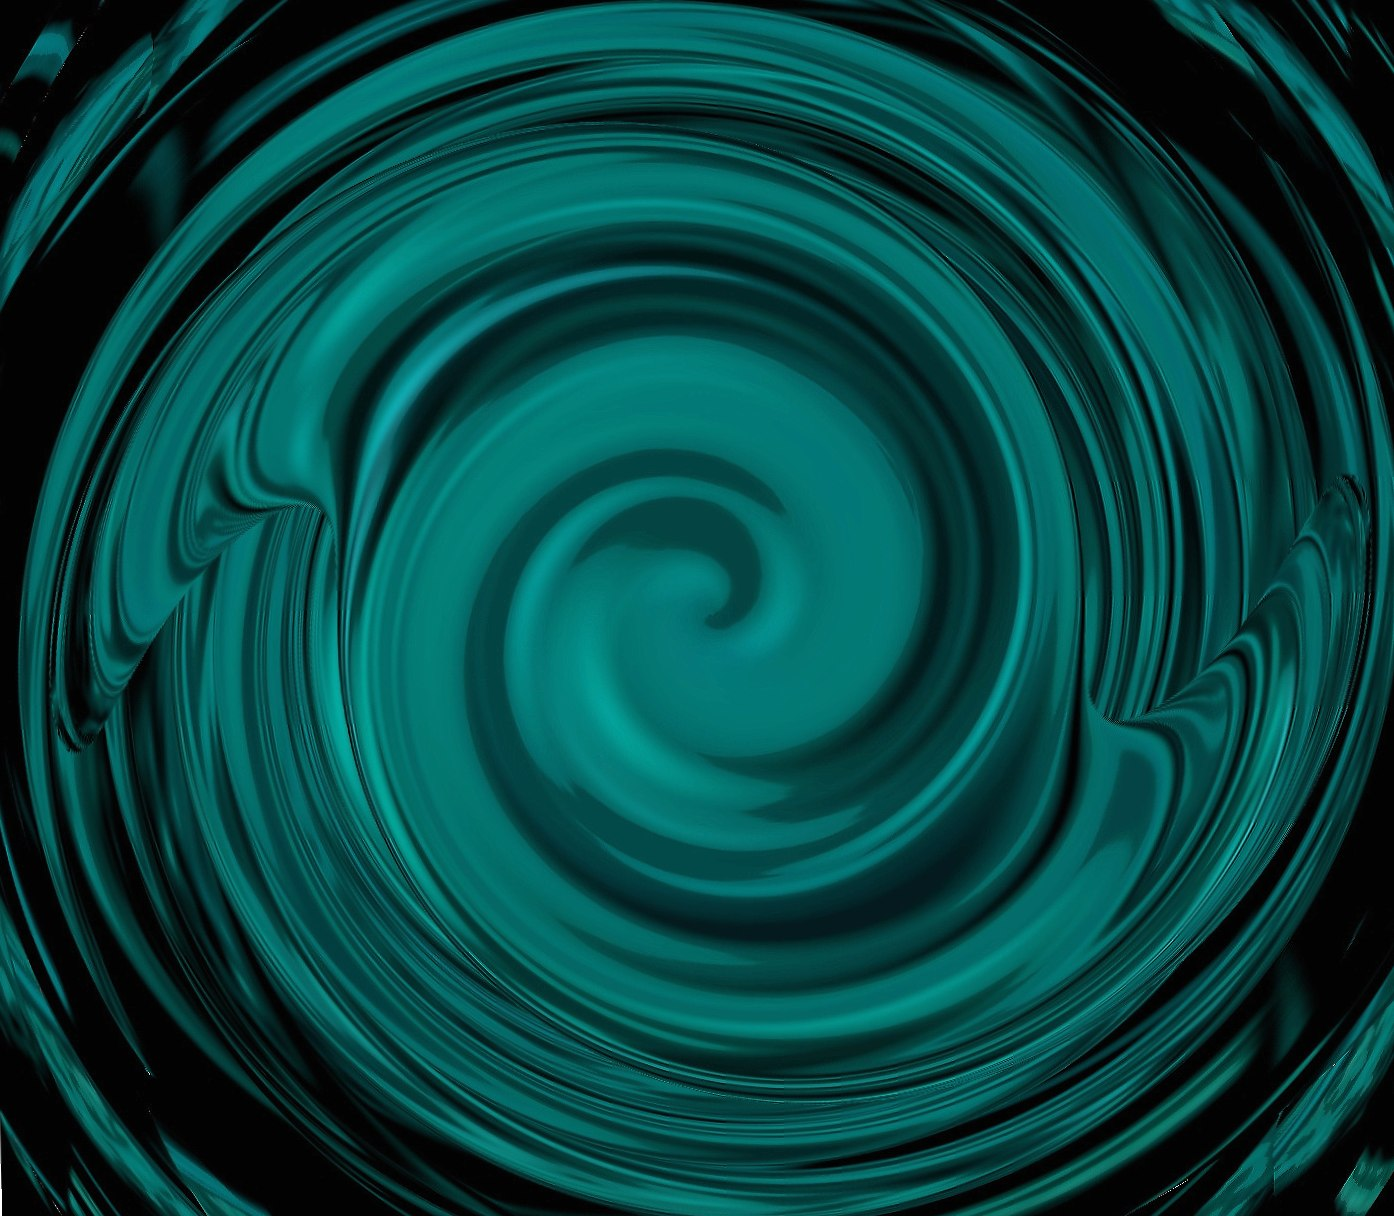 Bluespiral wallpapers HD quality